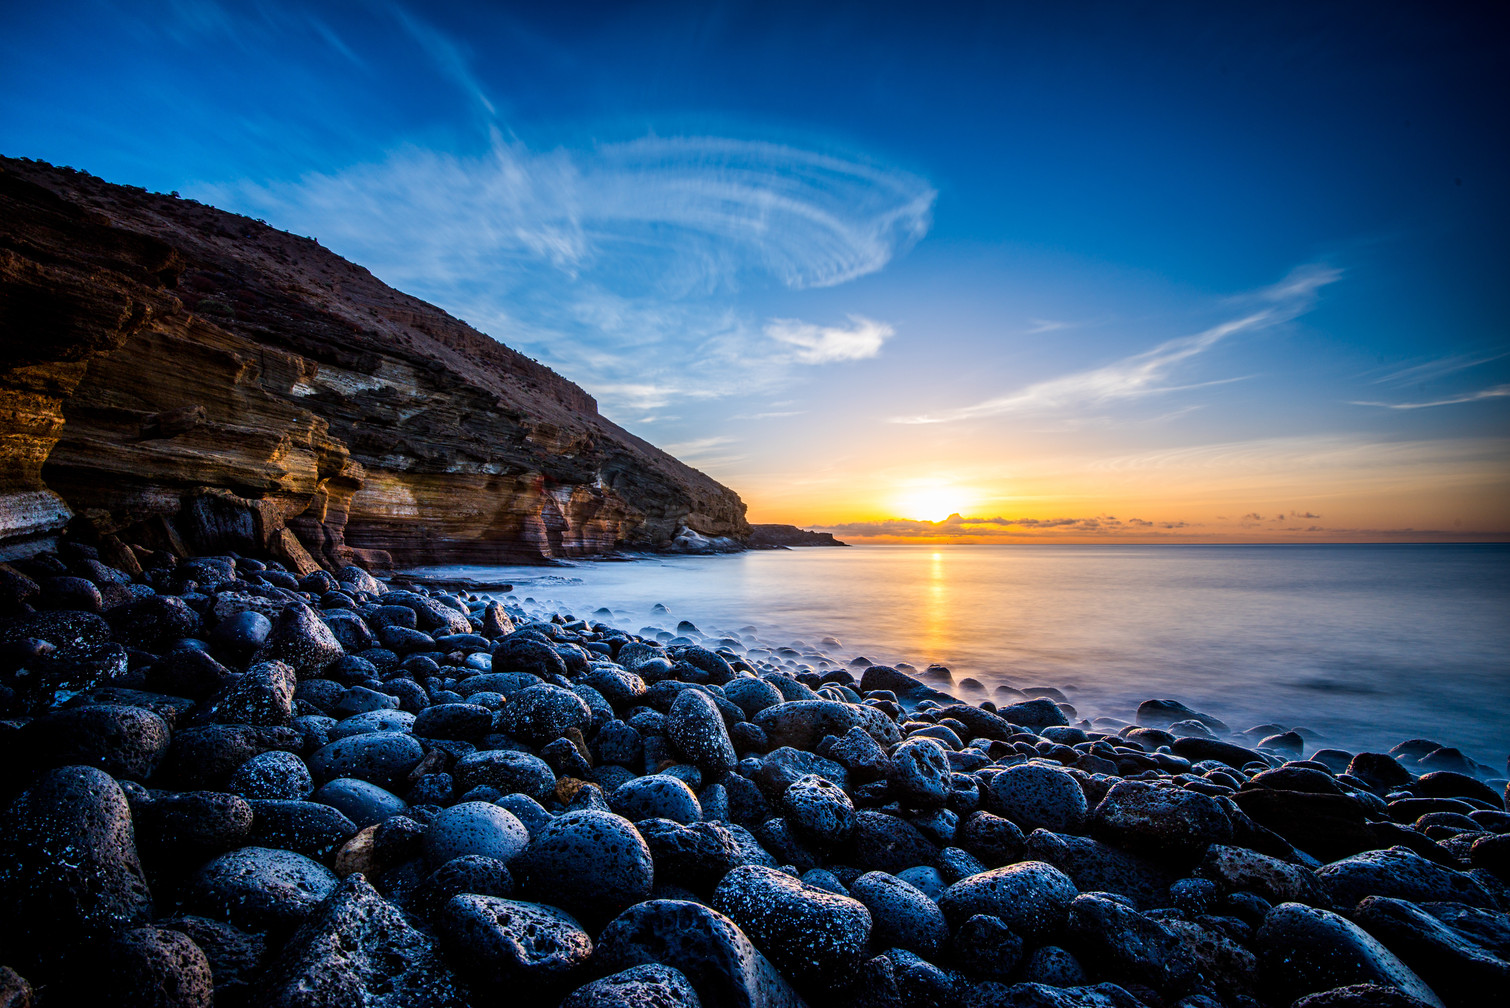 Sunrise at Playa Amarilla - Tenerife - Canary islands (Spain)